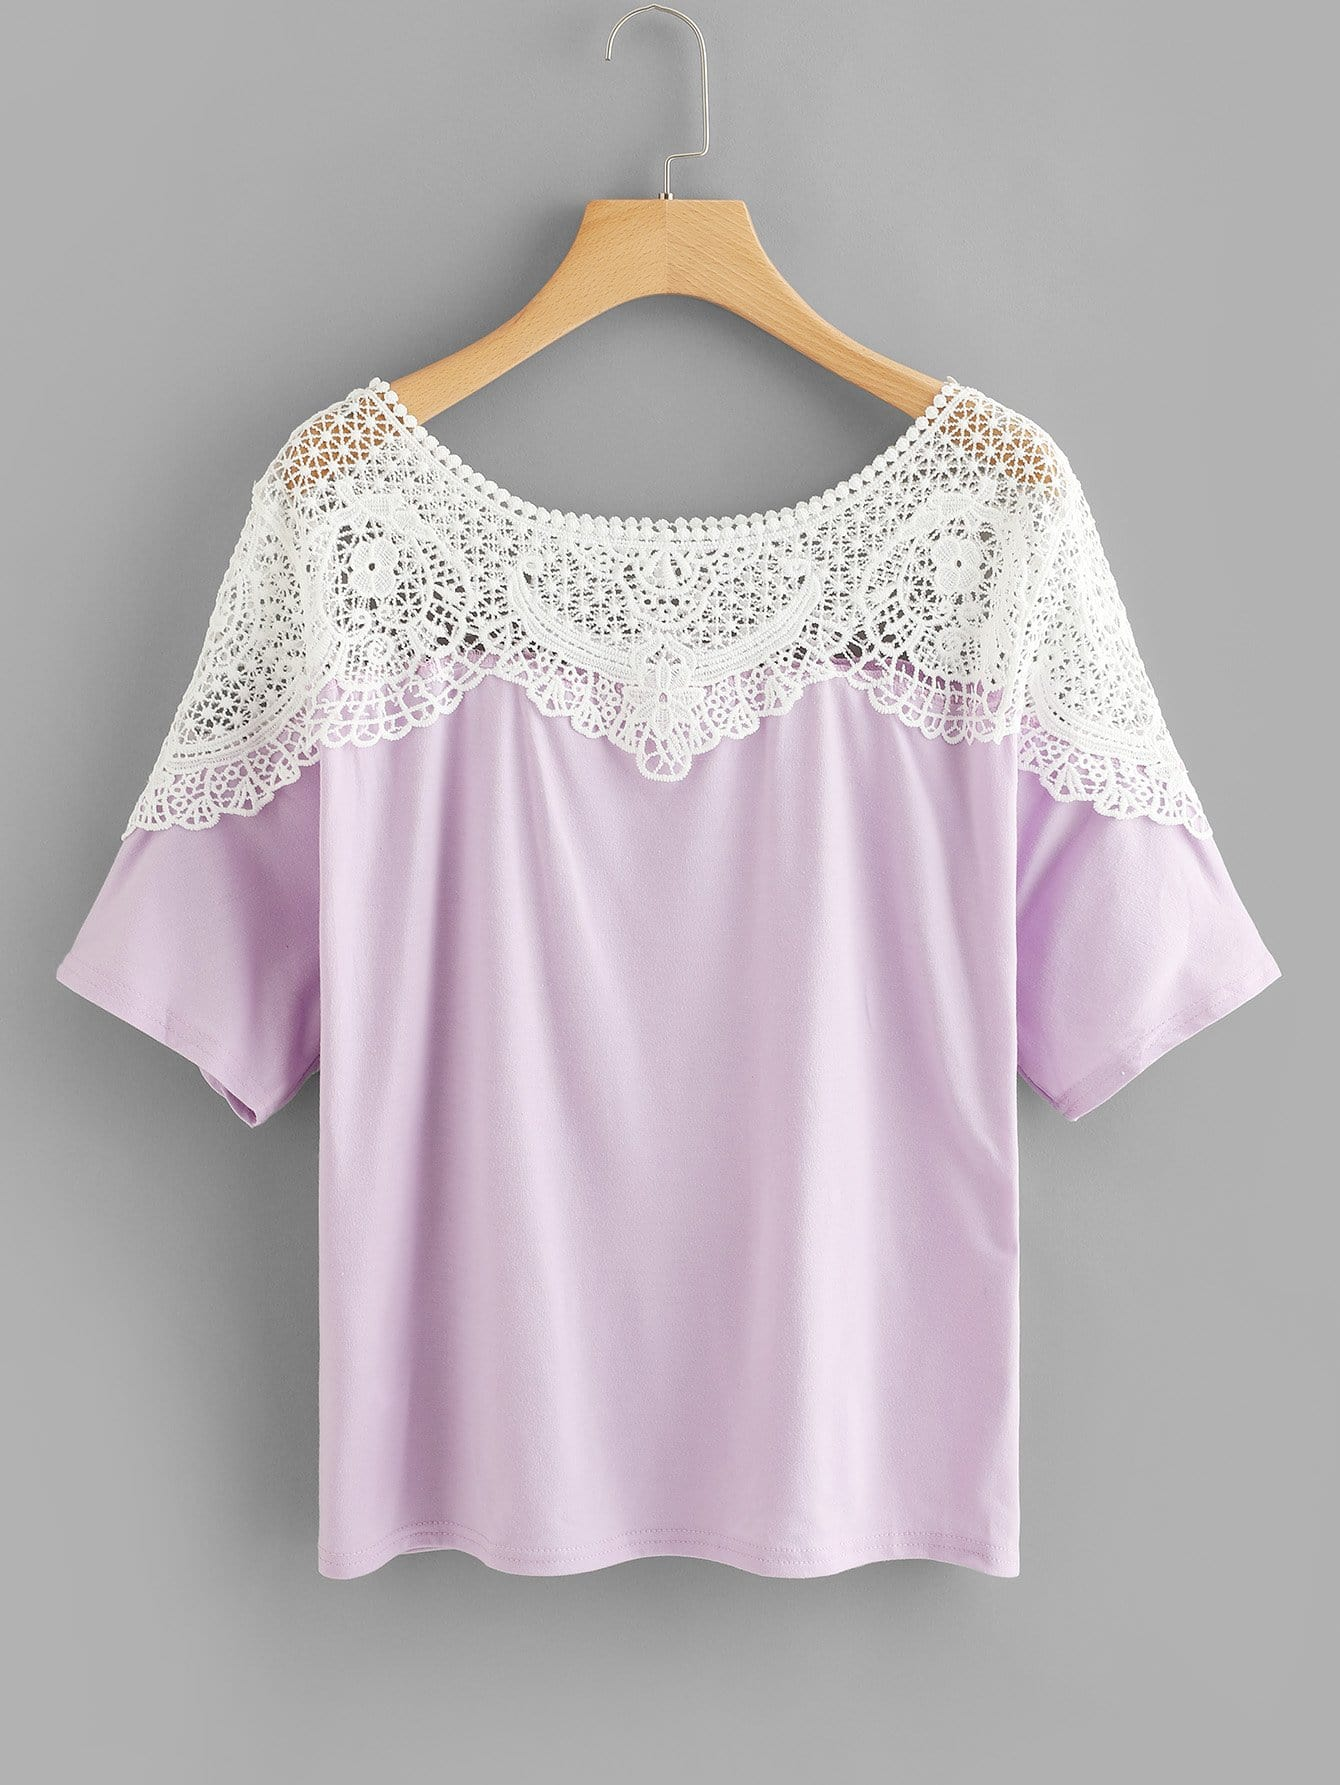 Hollow Crochet Lace Panel Tee crochet lace panel top